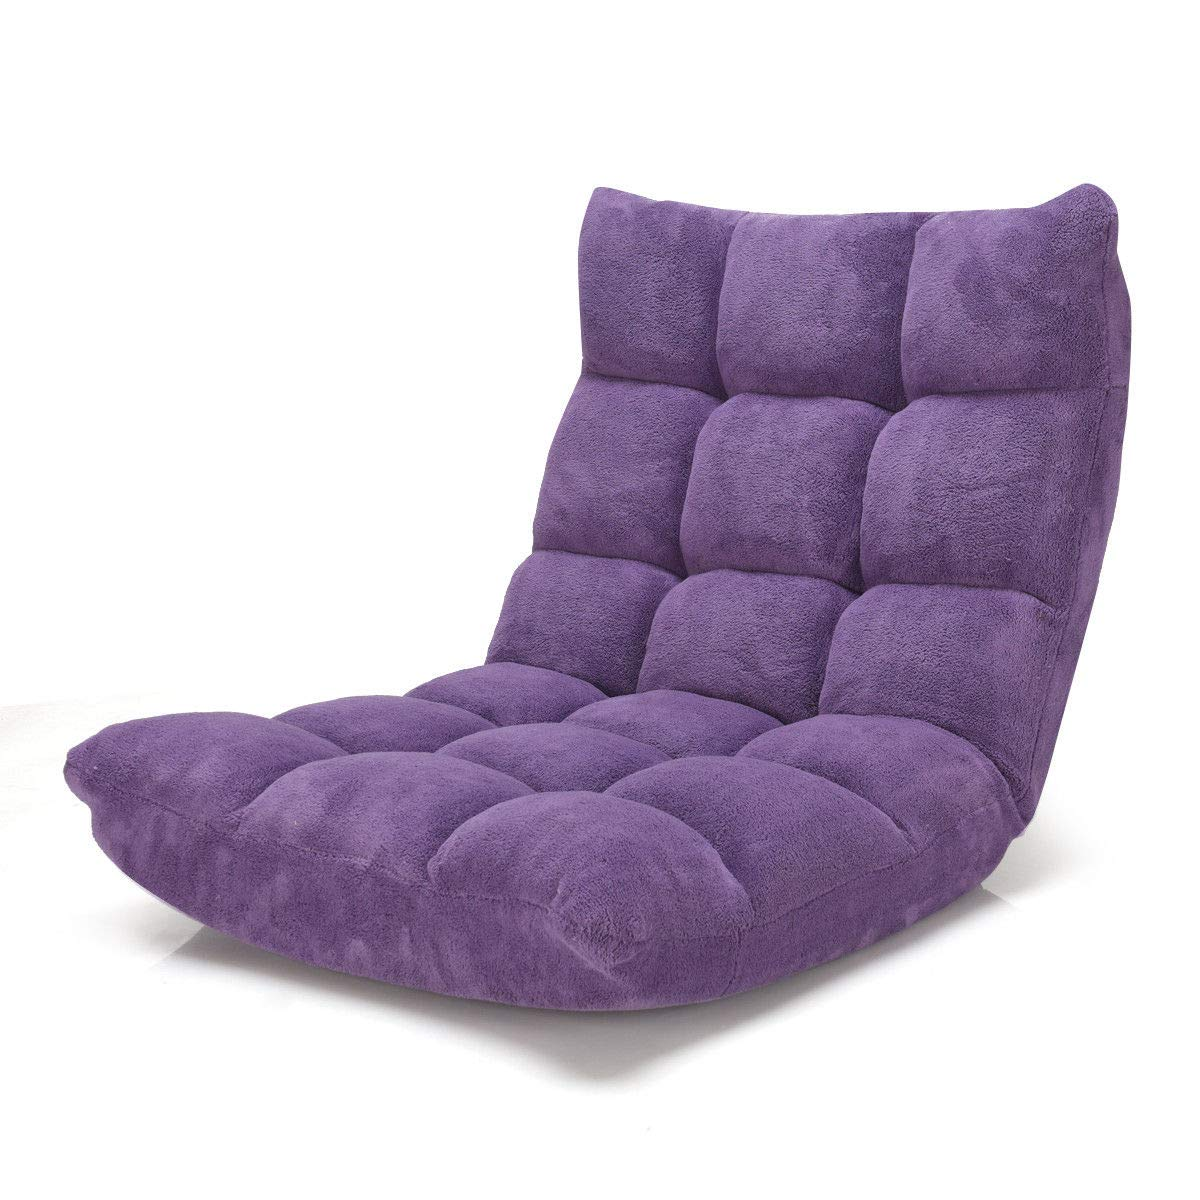 Chair Folding Gaming Sofa Chair Cushioned Purple Adjustable 14-Position Floor